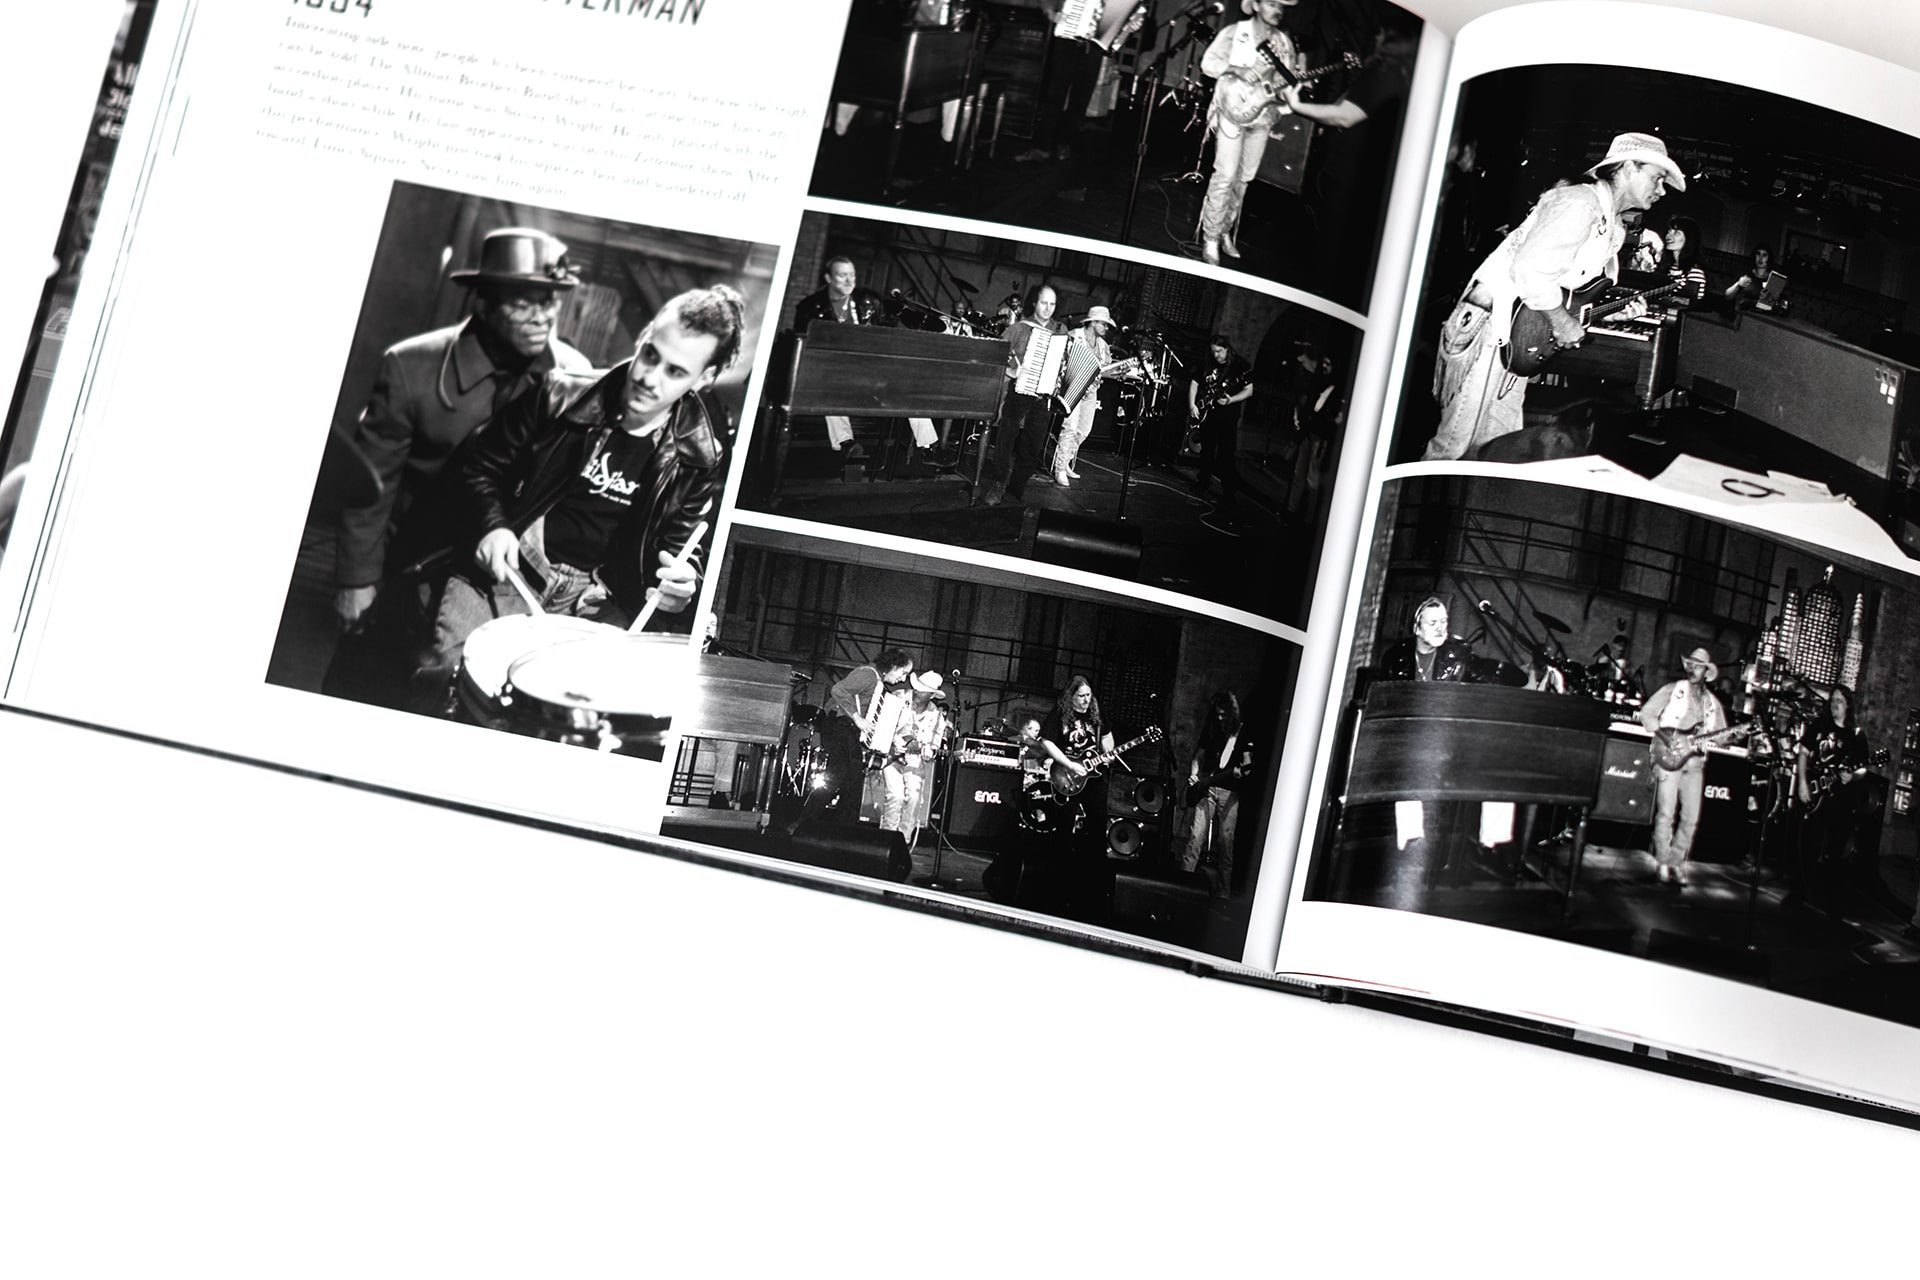 Page depicting the Allman Brothers on the Late Show